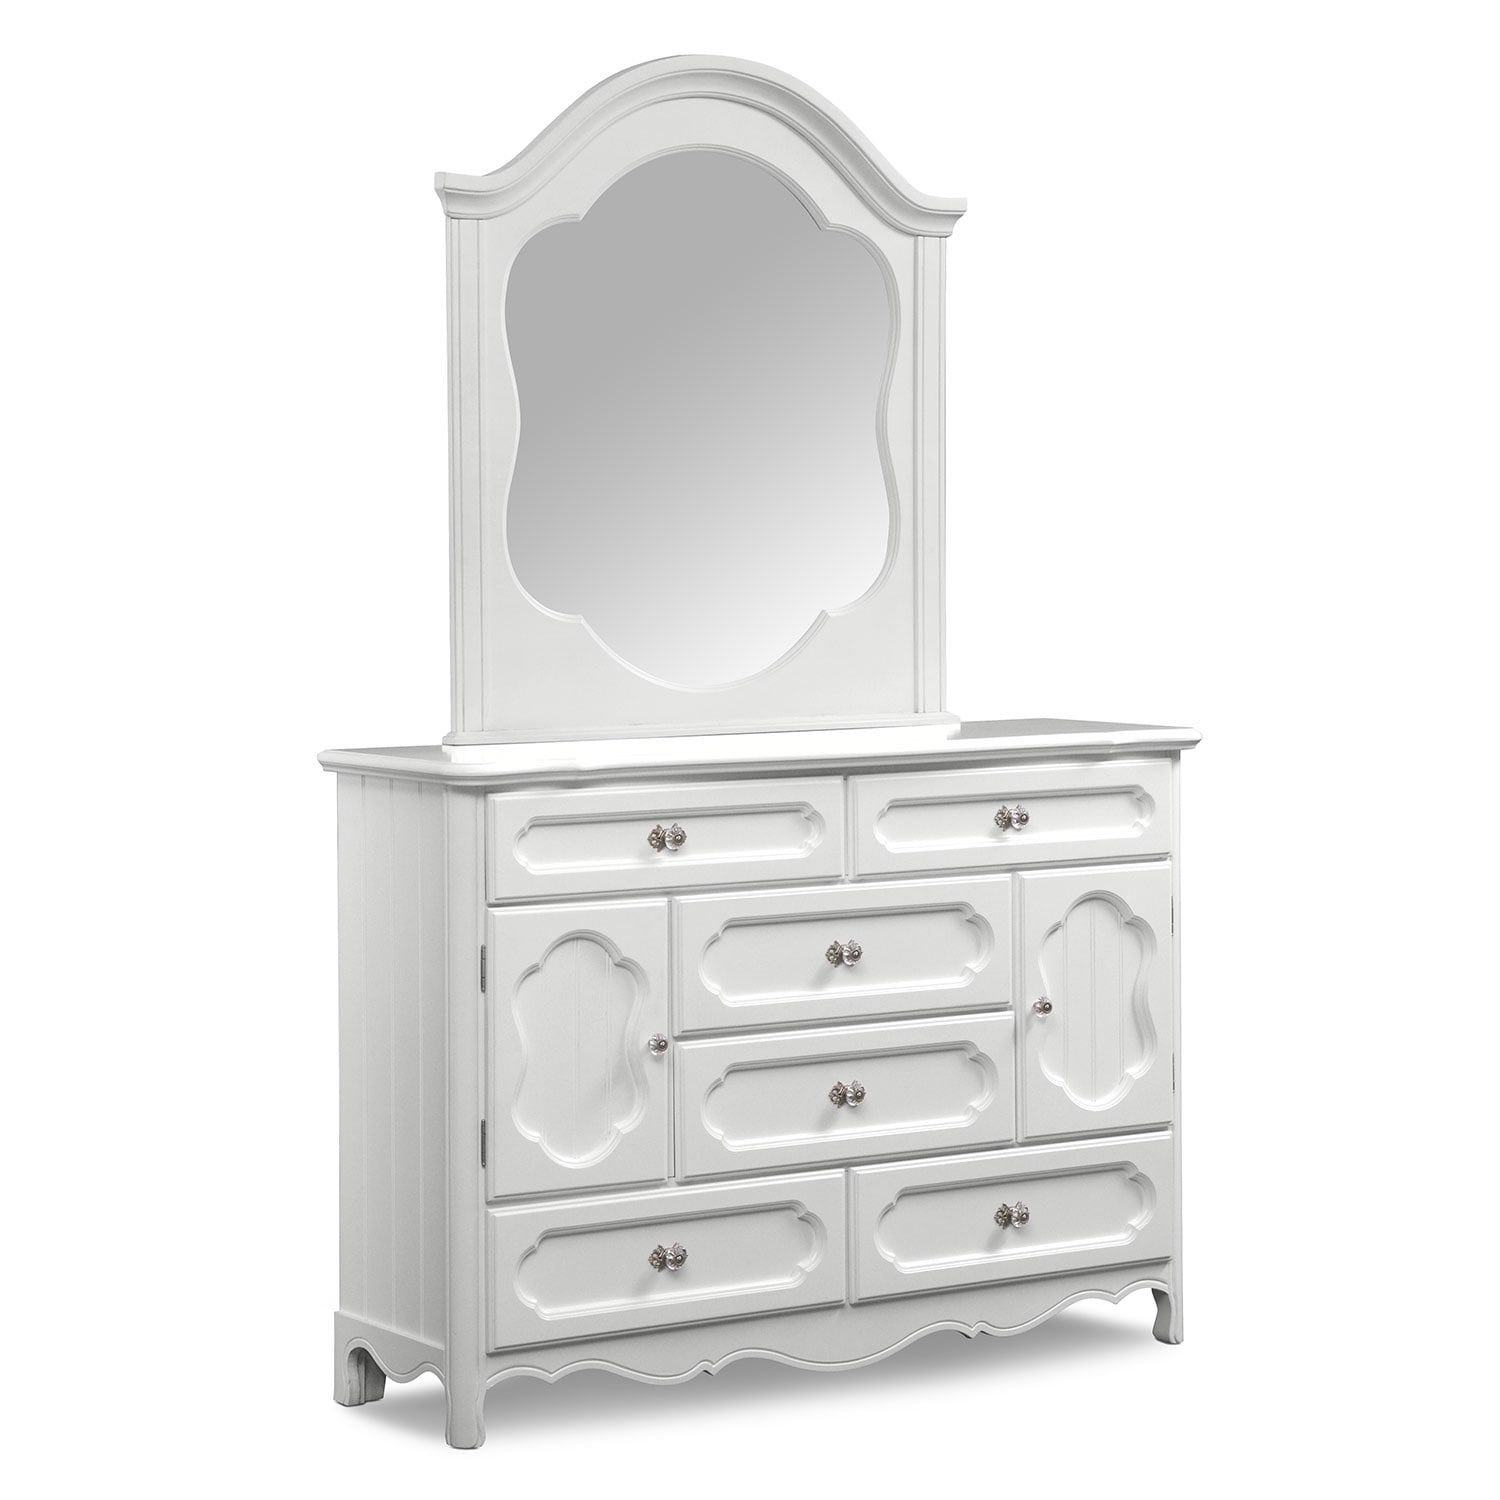 Carly Dresser and Mirror - White